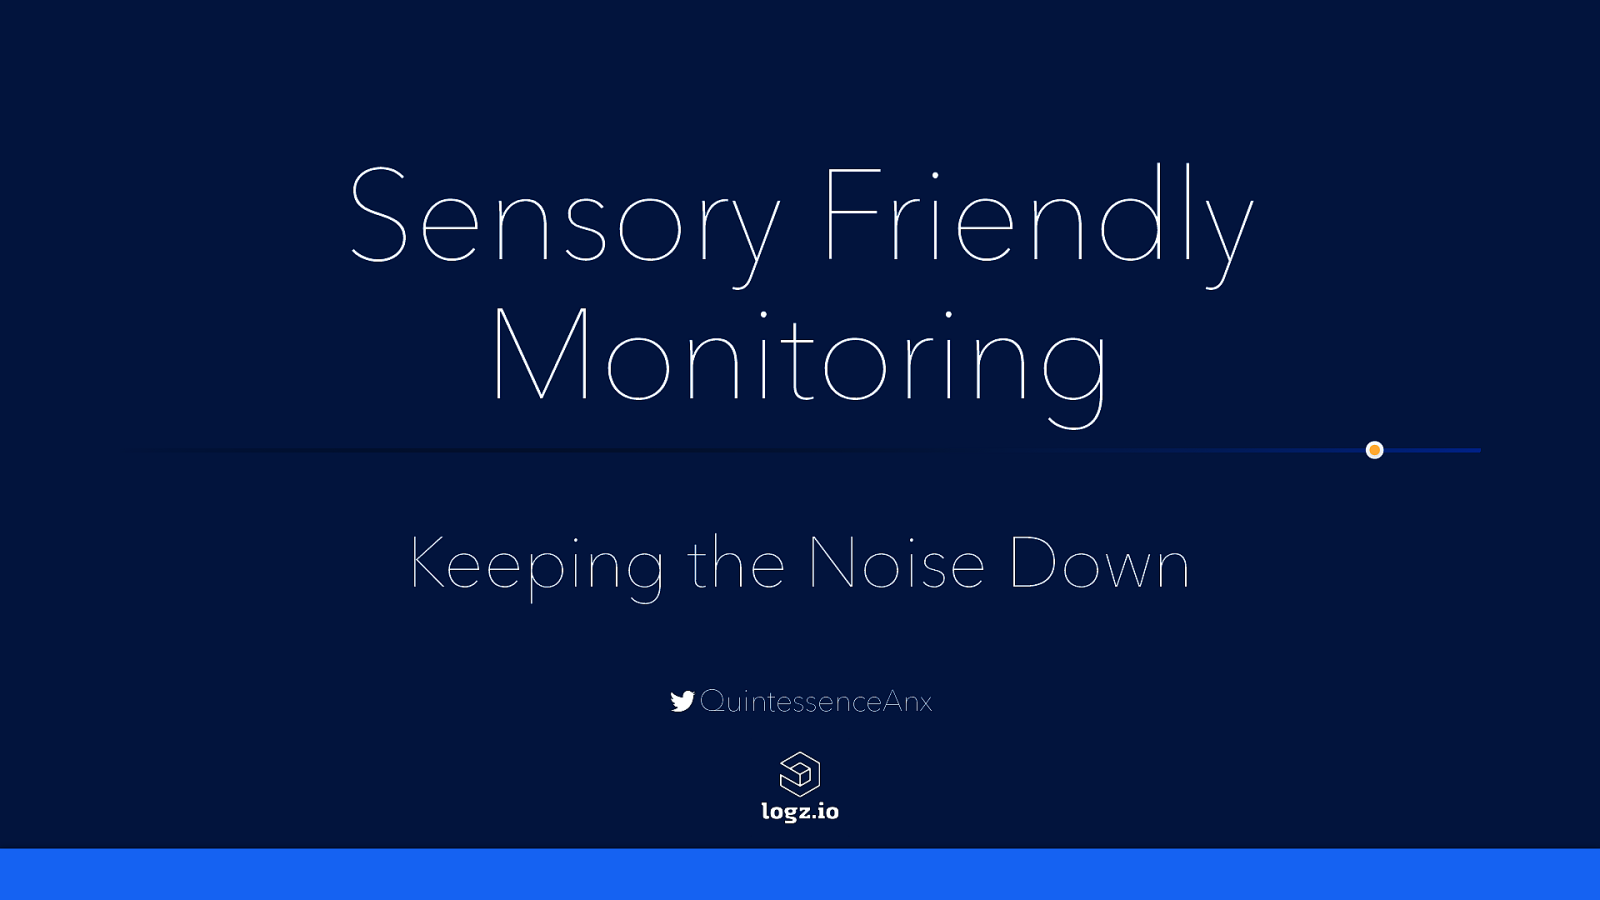 Sensory Friendly Monitoring: Keeping the Noise Down